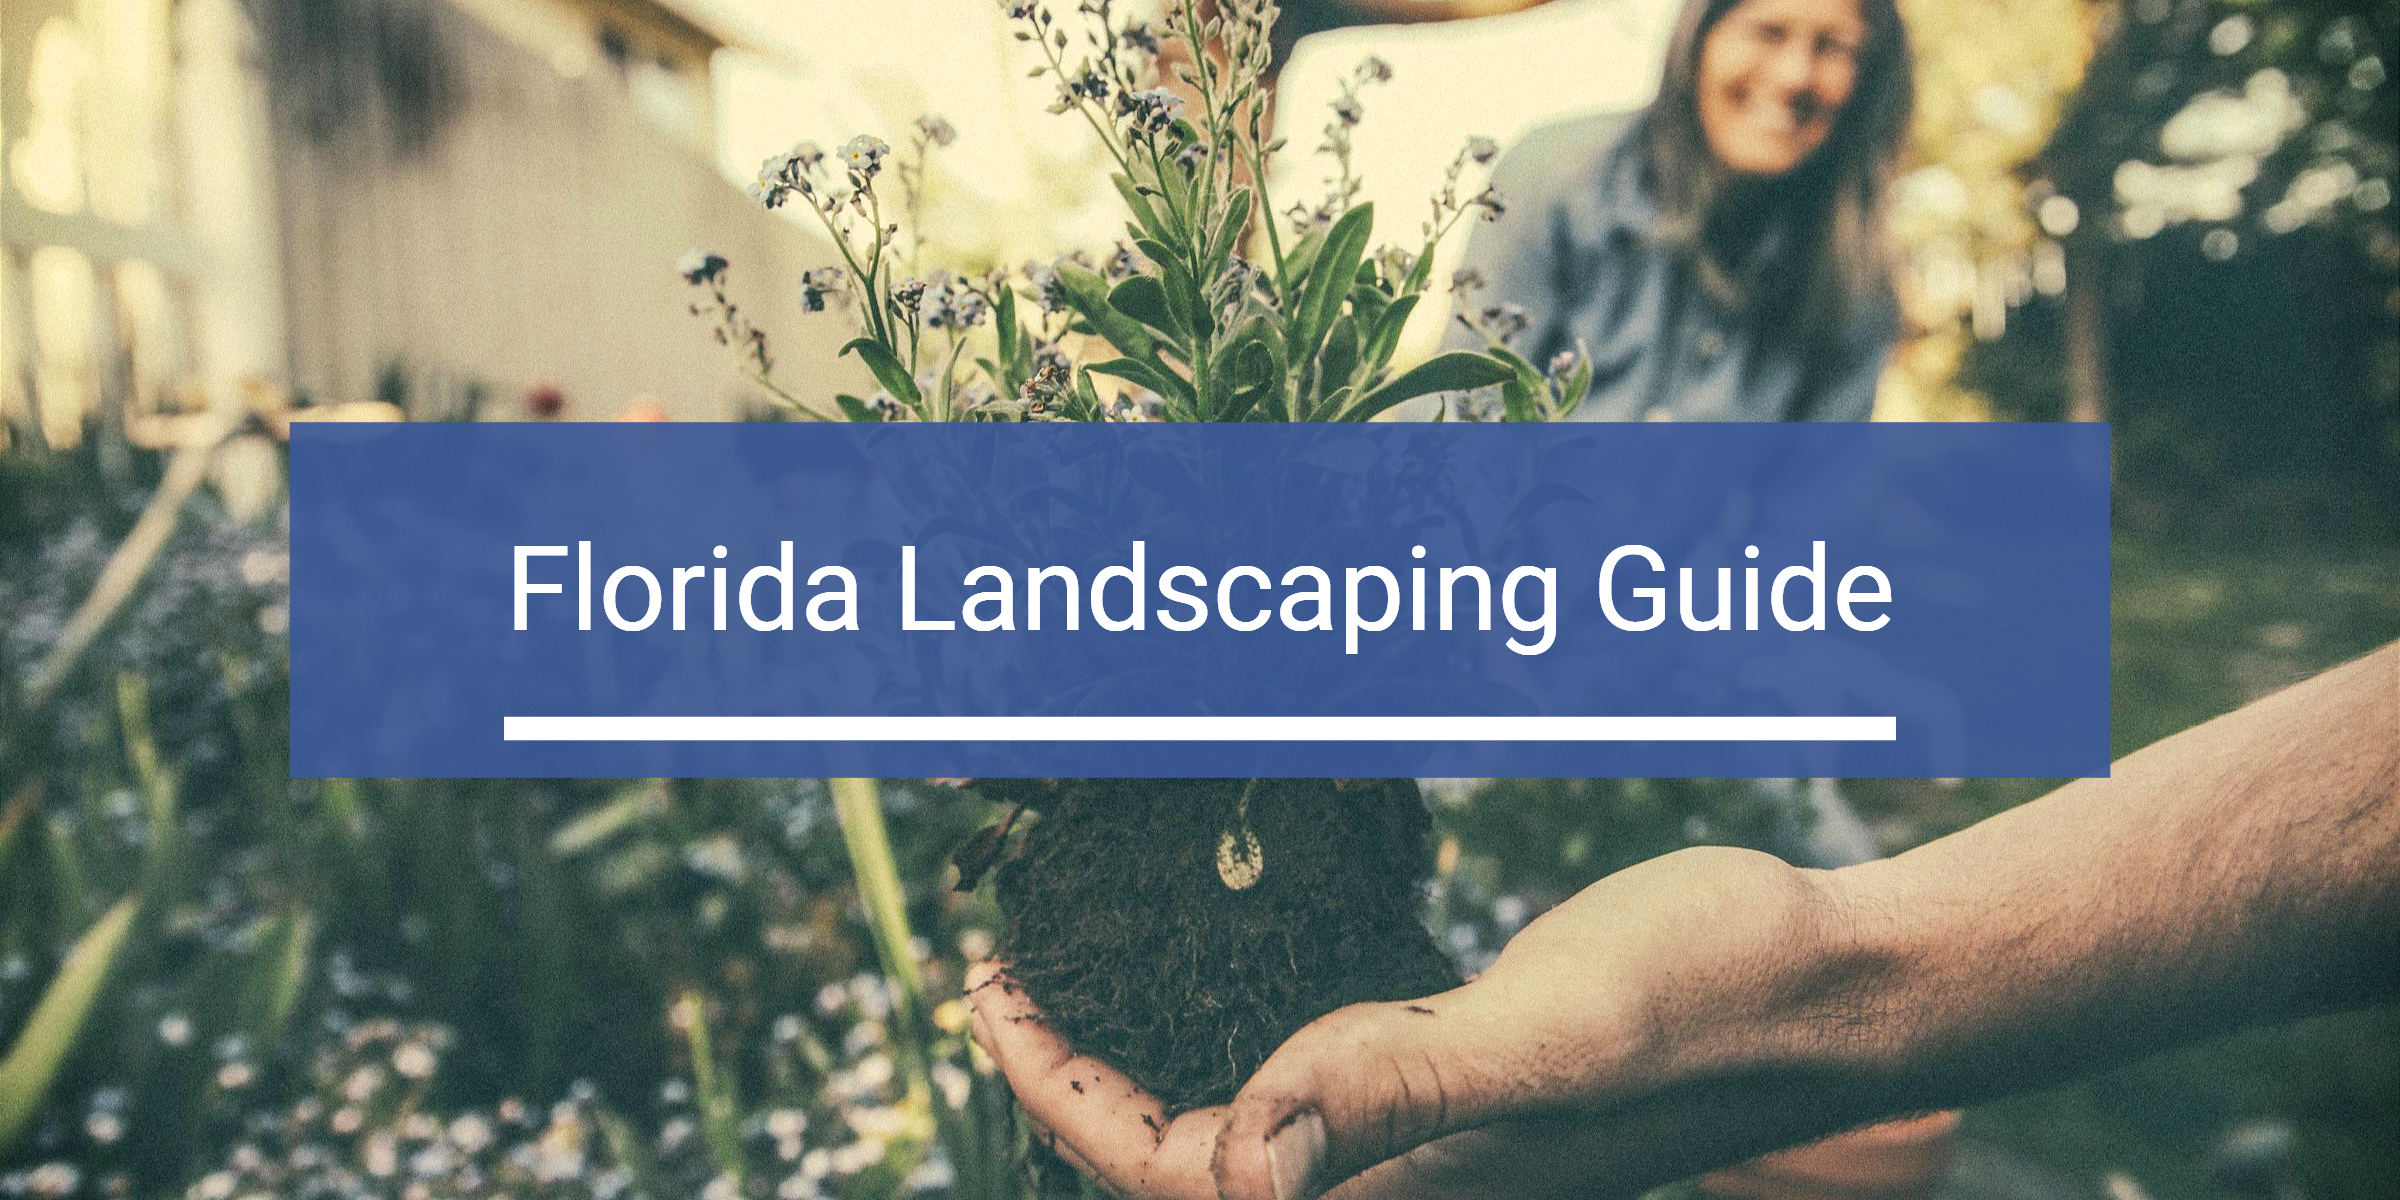 Florida Landscaping Guide Header Image